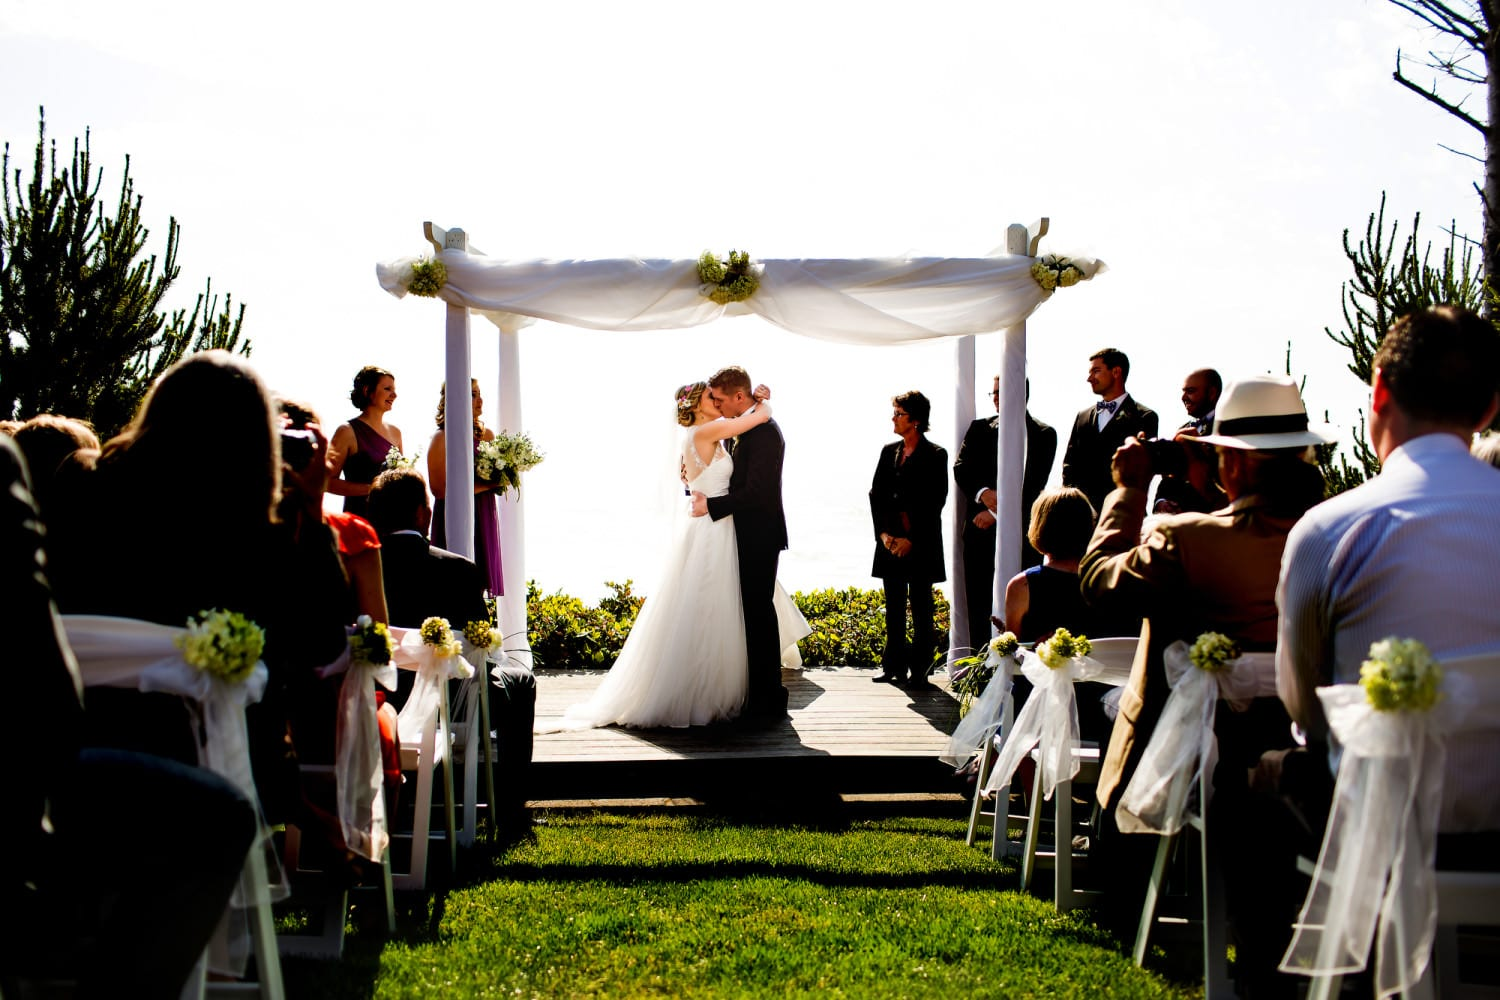 Storm Crest Cellars Wedding in South Beach Newport, Oregon by Stark Photography (26)